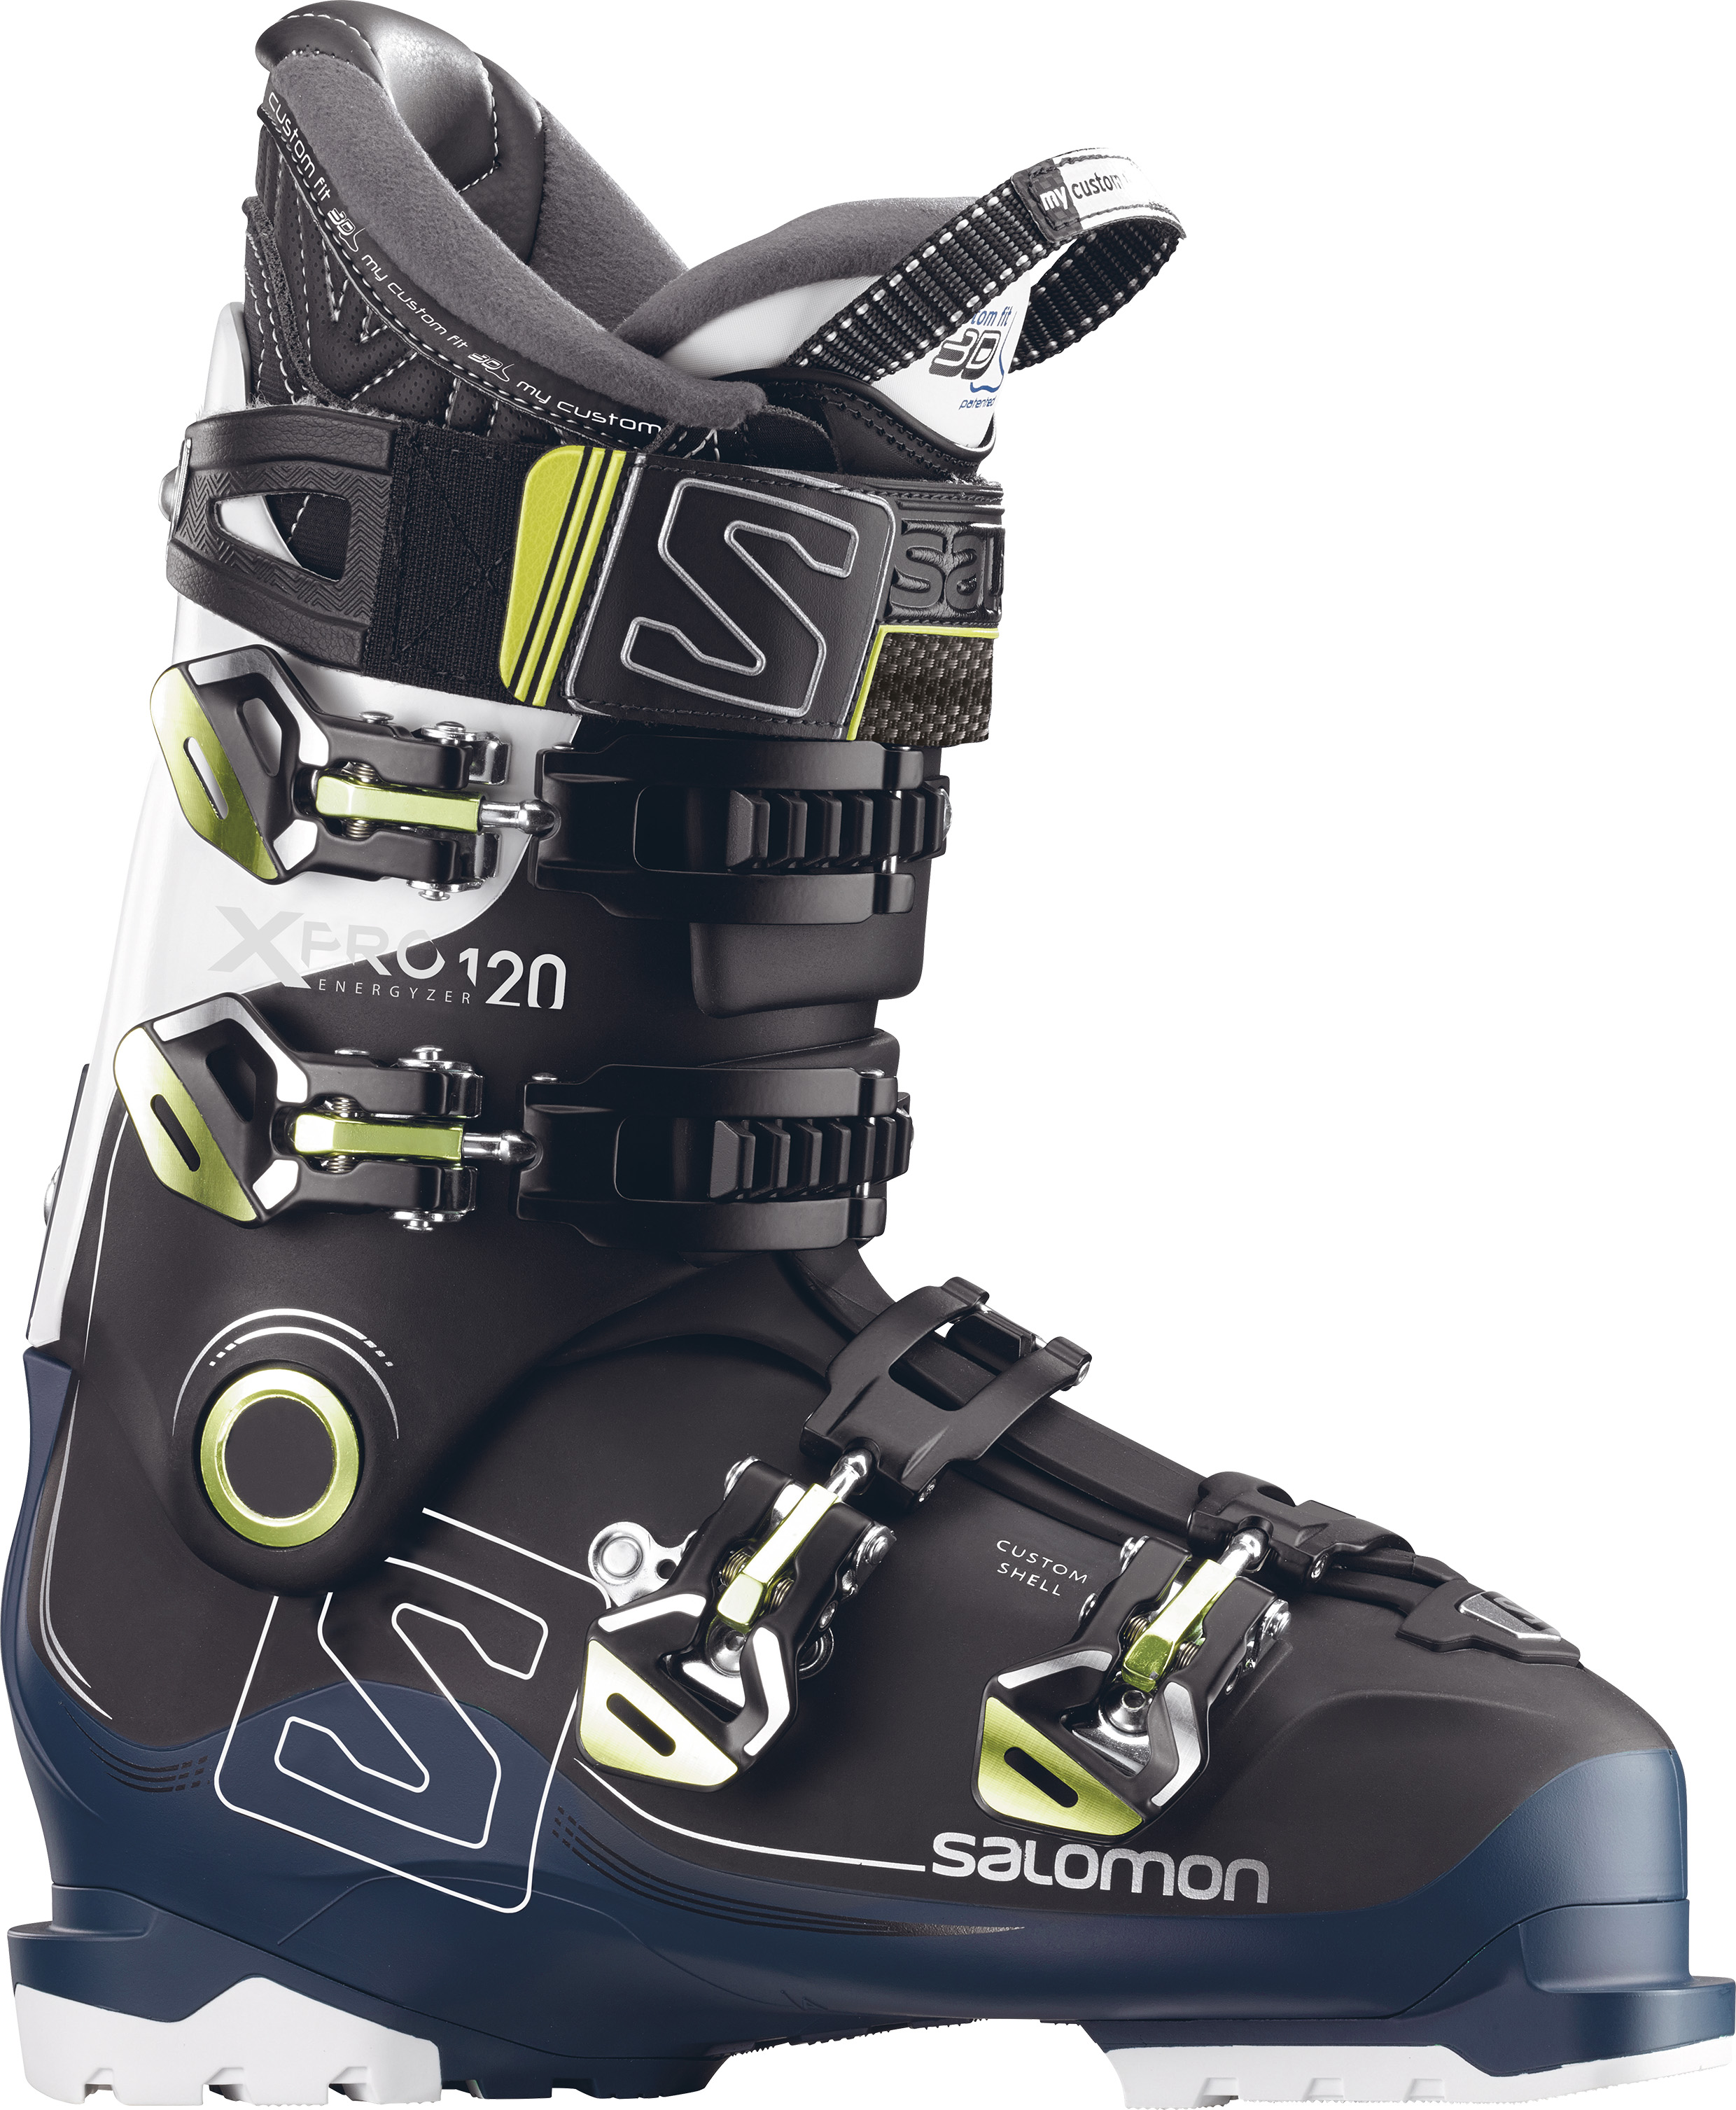 Salomon X PRO 120 Black/Petrol/Blue/White 17/18 391522 27